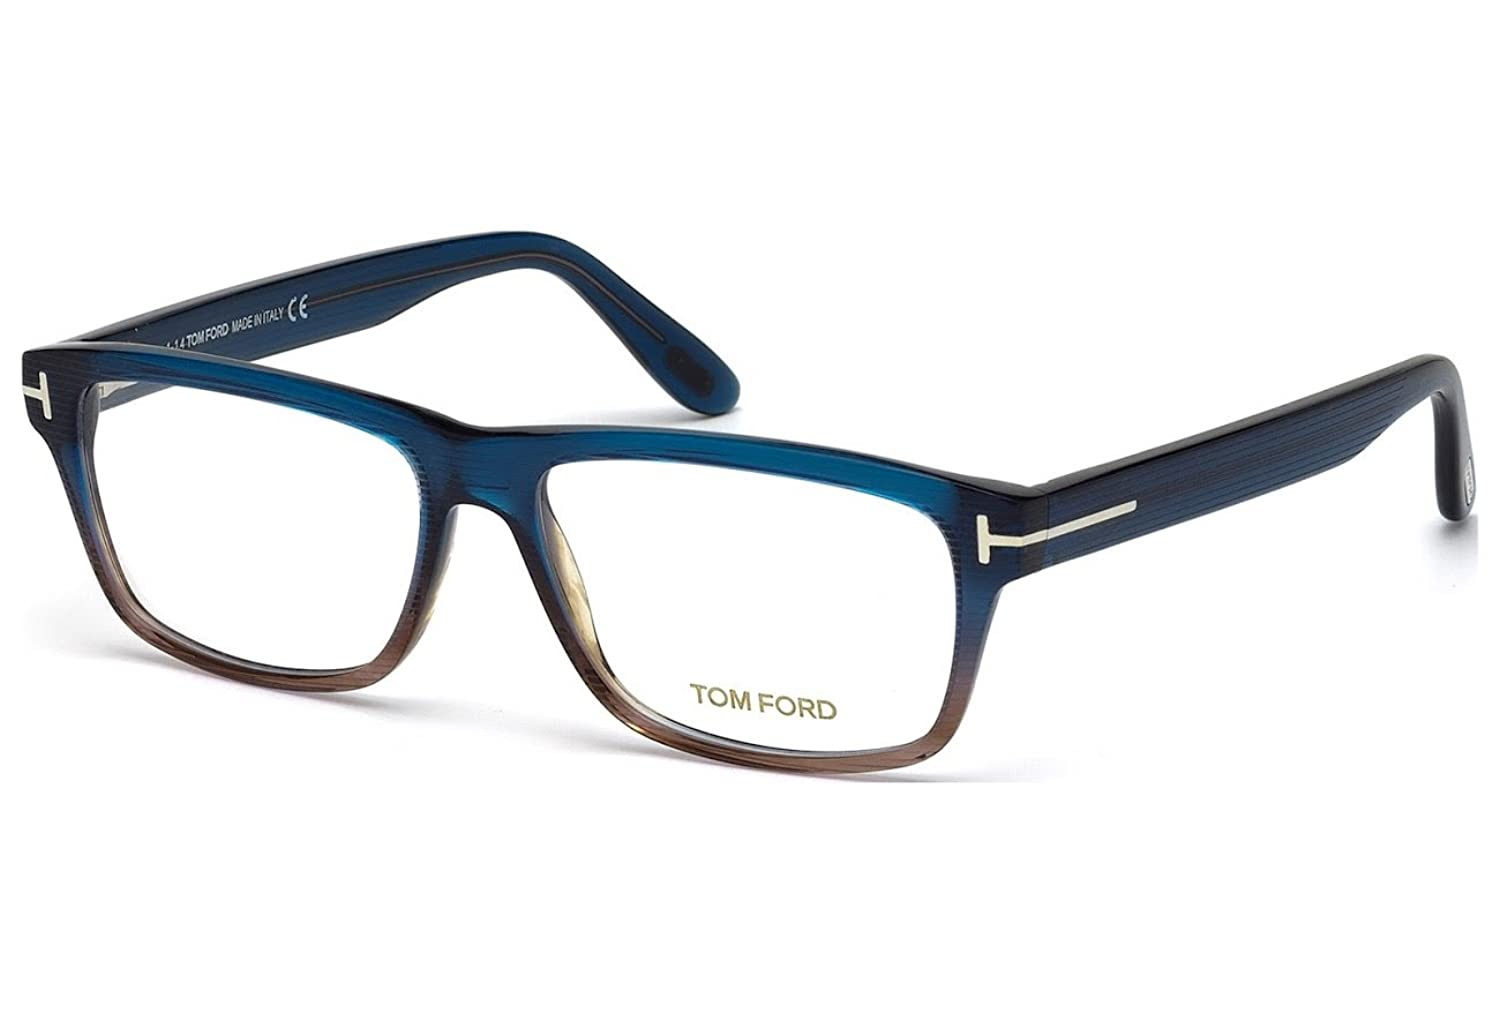 Amazon.com: Eyeglasses Tom Ford TF 5320 FT5320 092 blue/other: Shoes